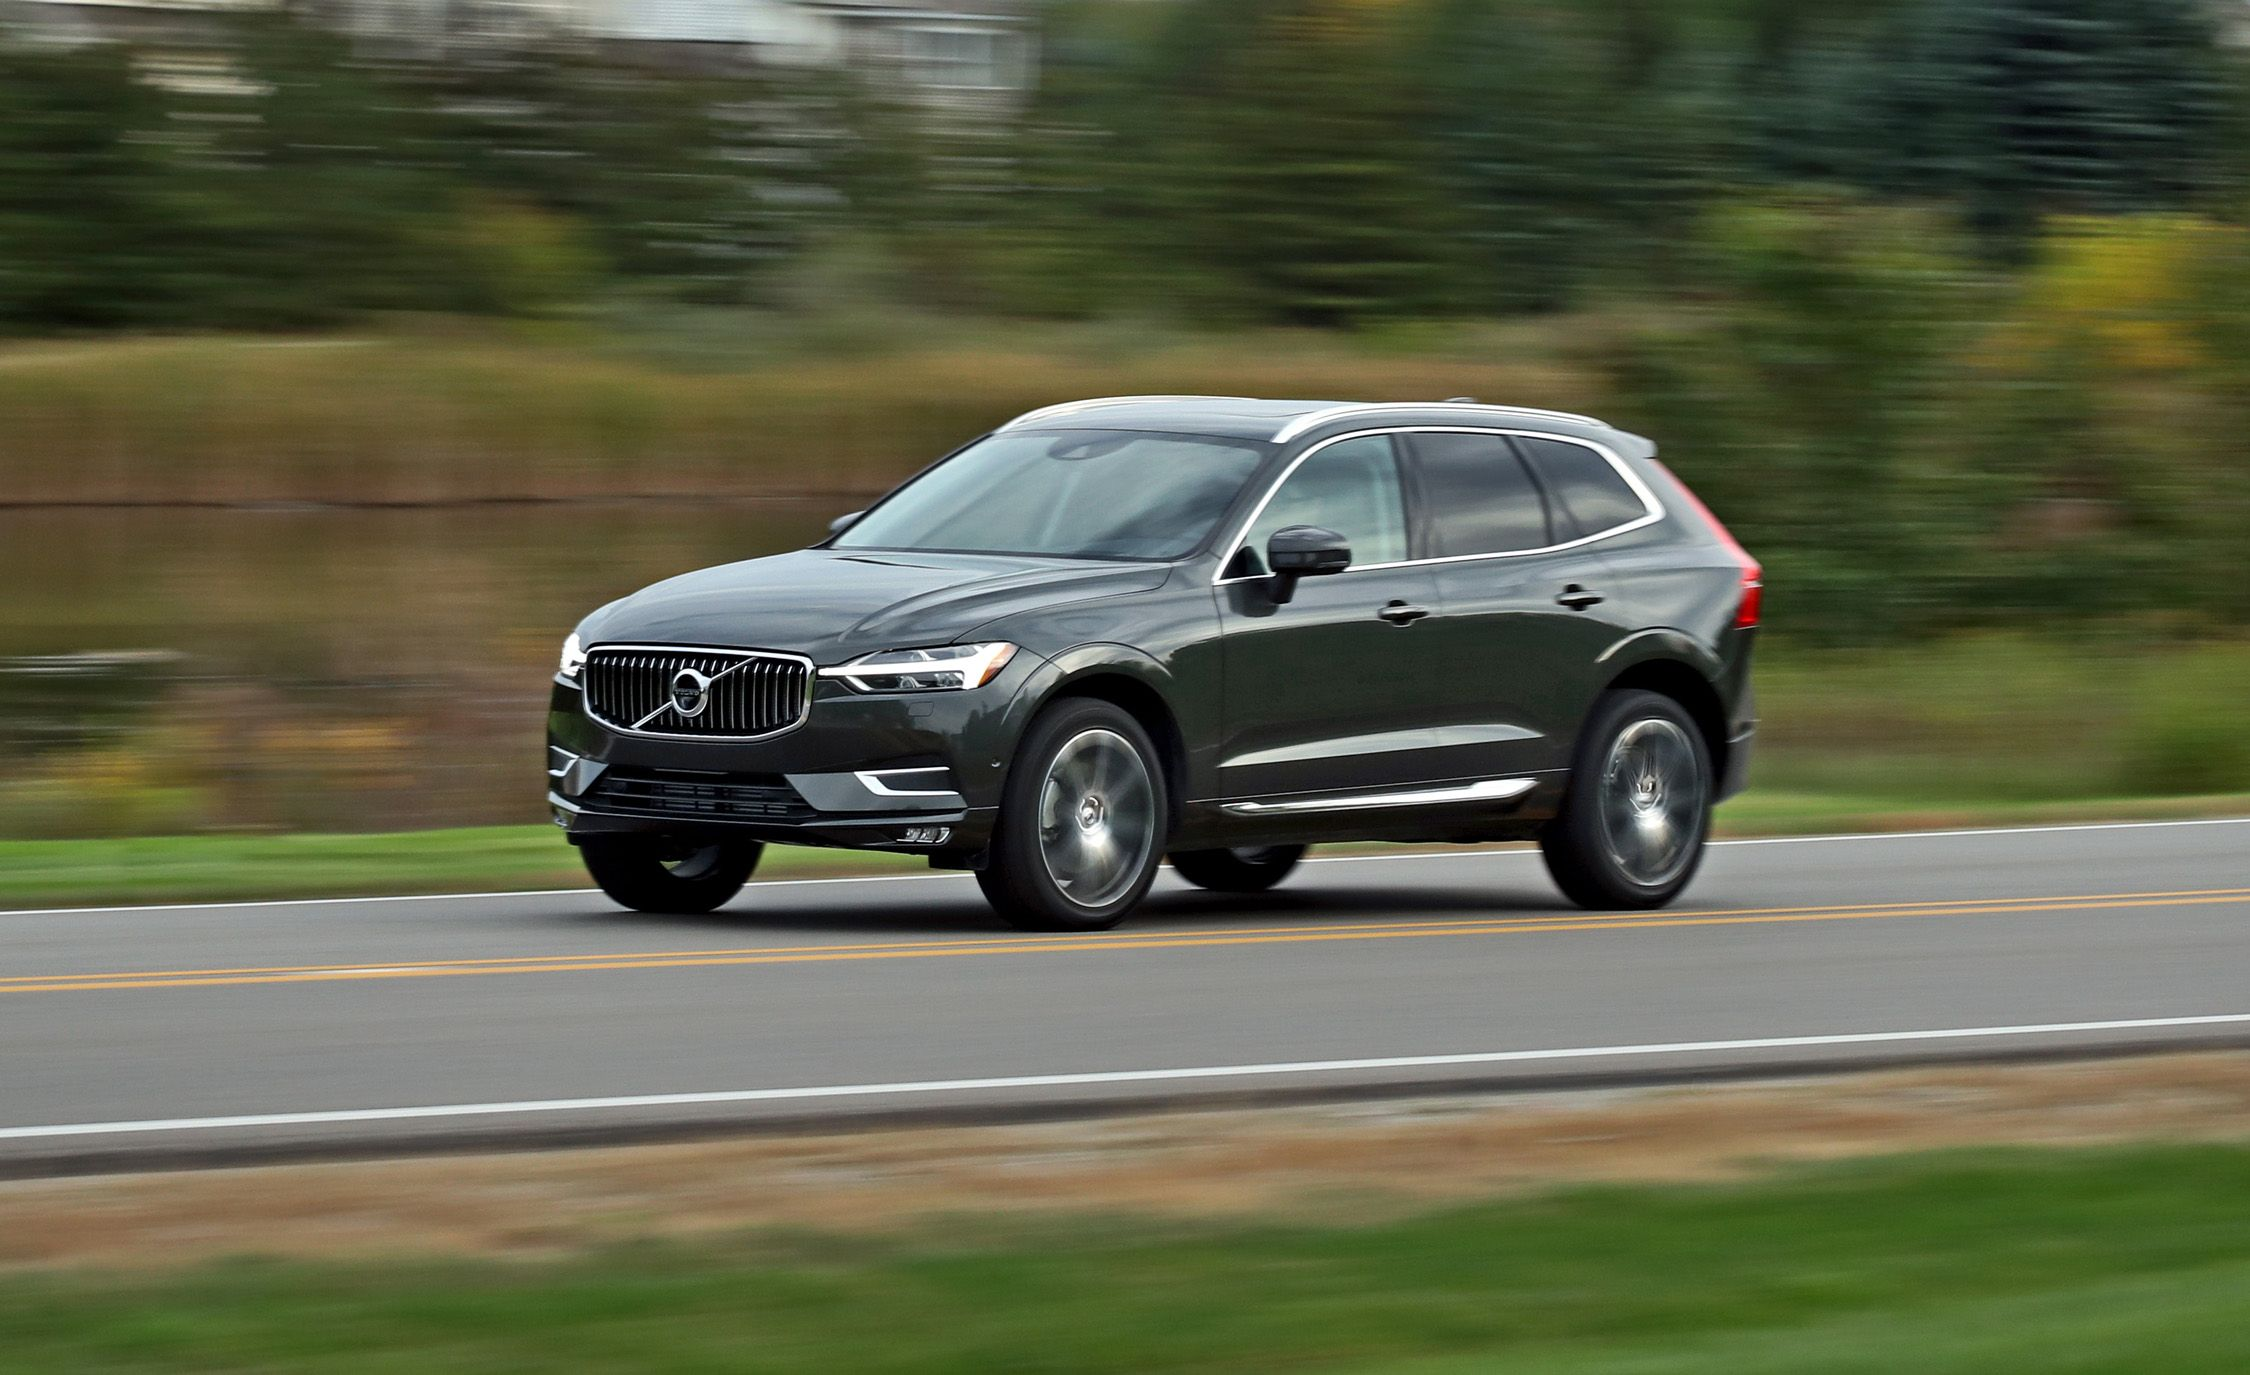 2018 Volvo XC60 T6 AWD Test | Review | Car and Driver | Volvo T6 Engine Breakdown |  | Car and Driver